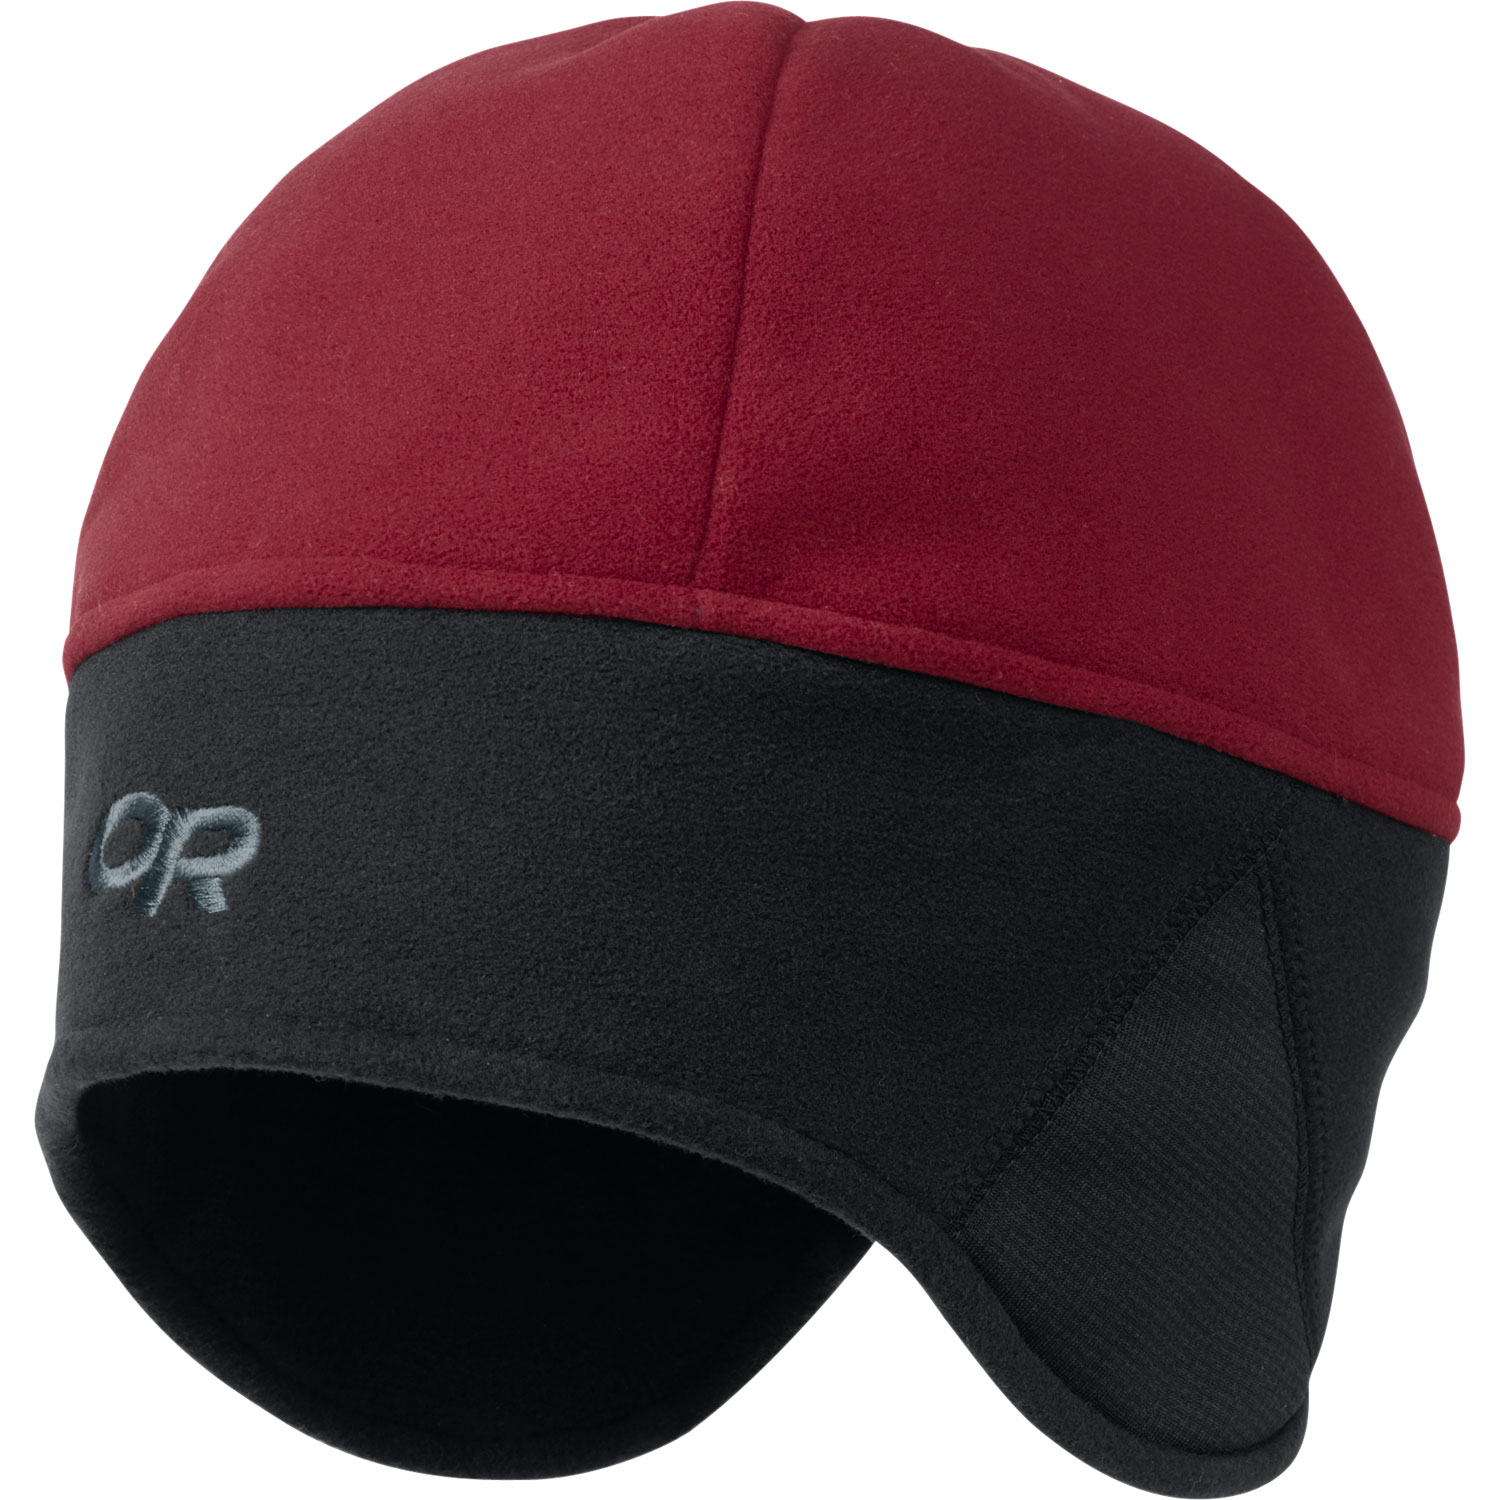 Outdoor Research Windwarrior Beanie - $20.55